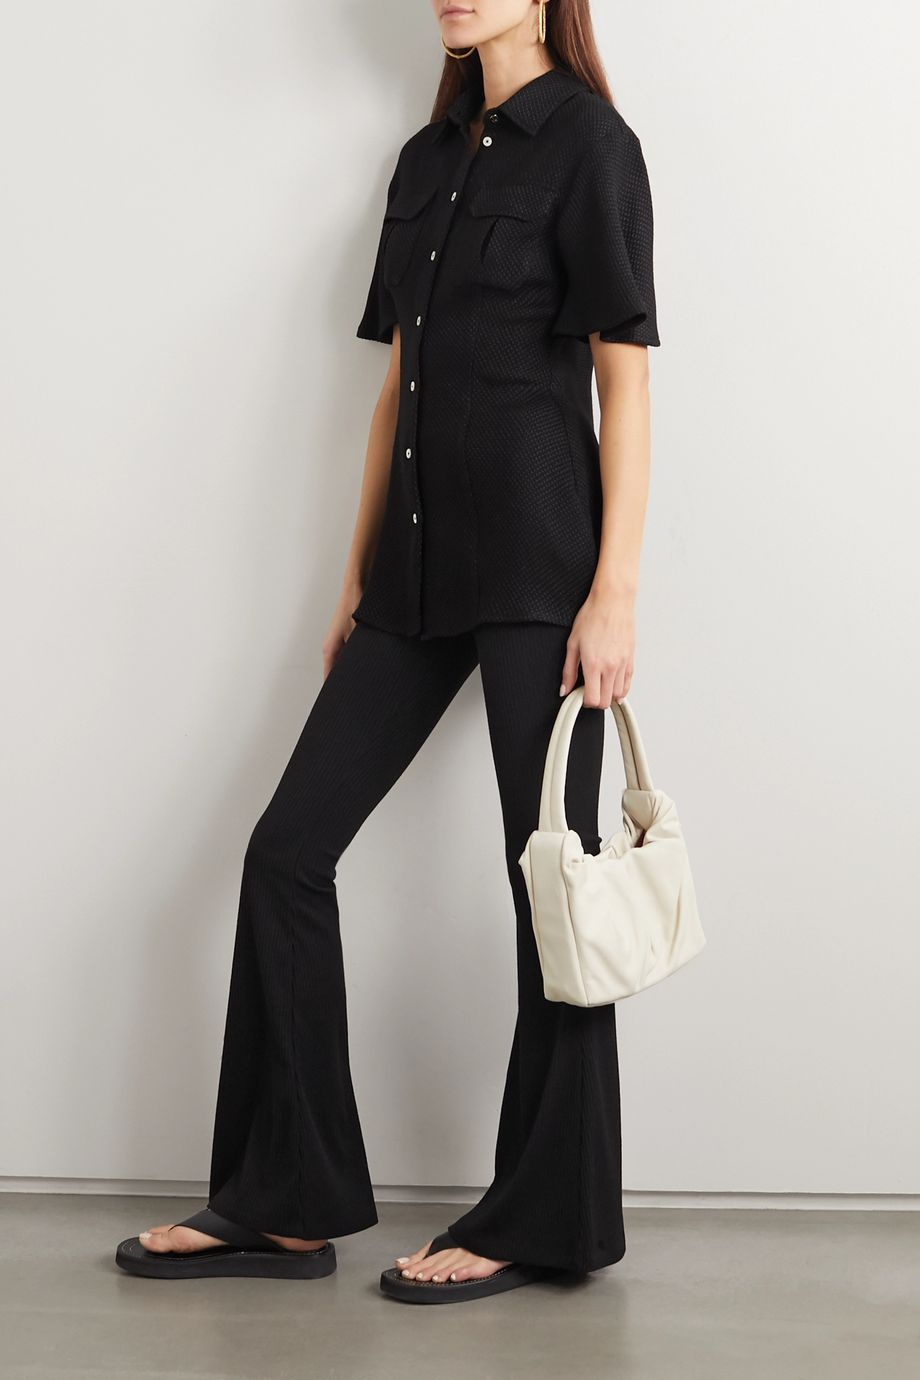 Maggie Marilyn Lead With Love stretch-jersey flared pants